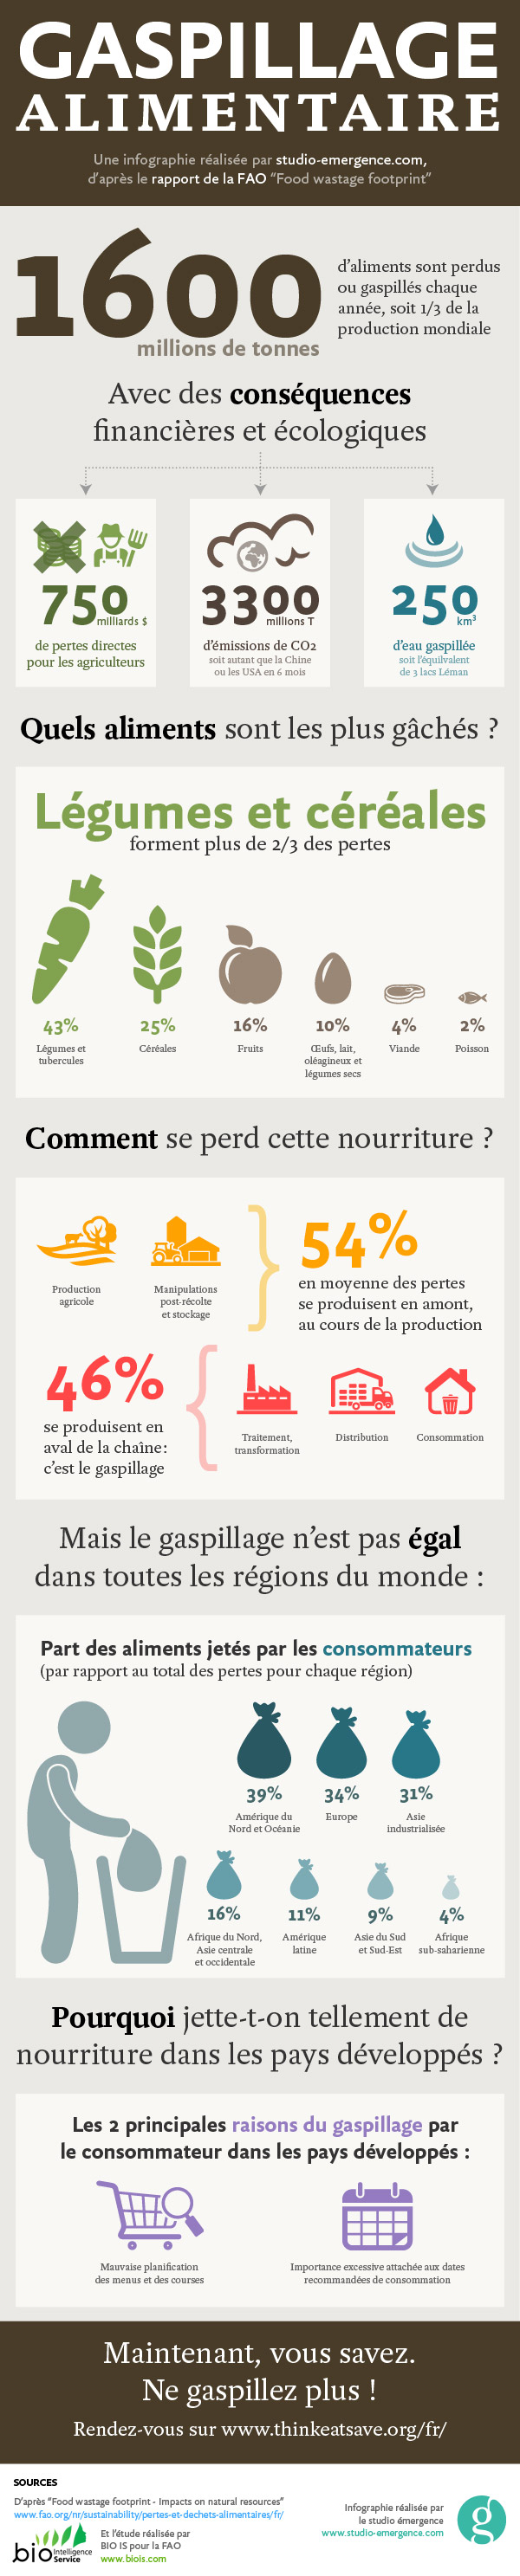 Gaspillage Alimentaire Gaspillage Alimentaire Alimentaire Infographie